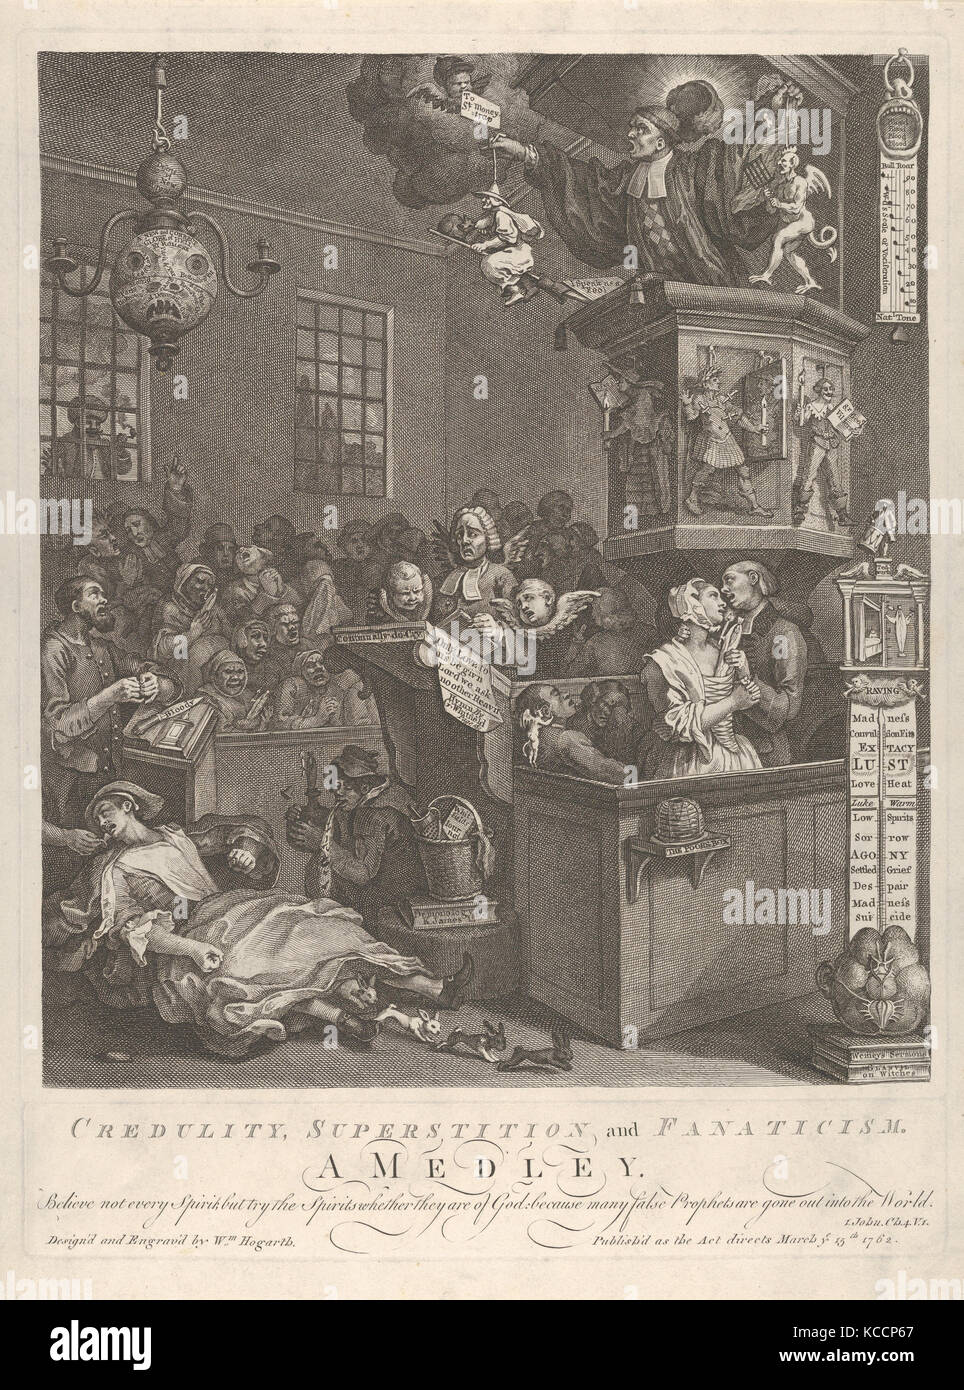 Credulity, Superstition, and Fanaticism, William Hogarth, March 15, 1762 - Stock Image